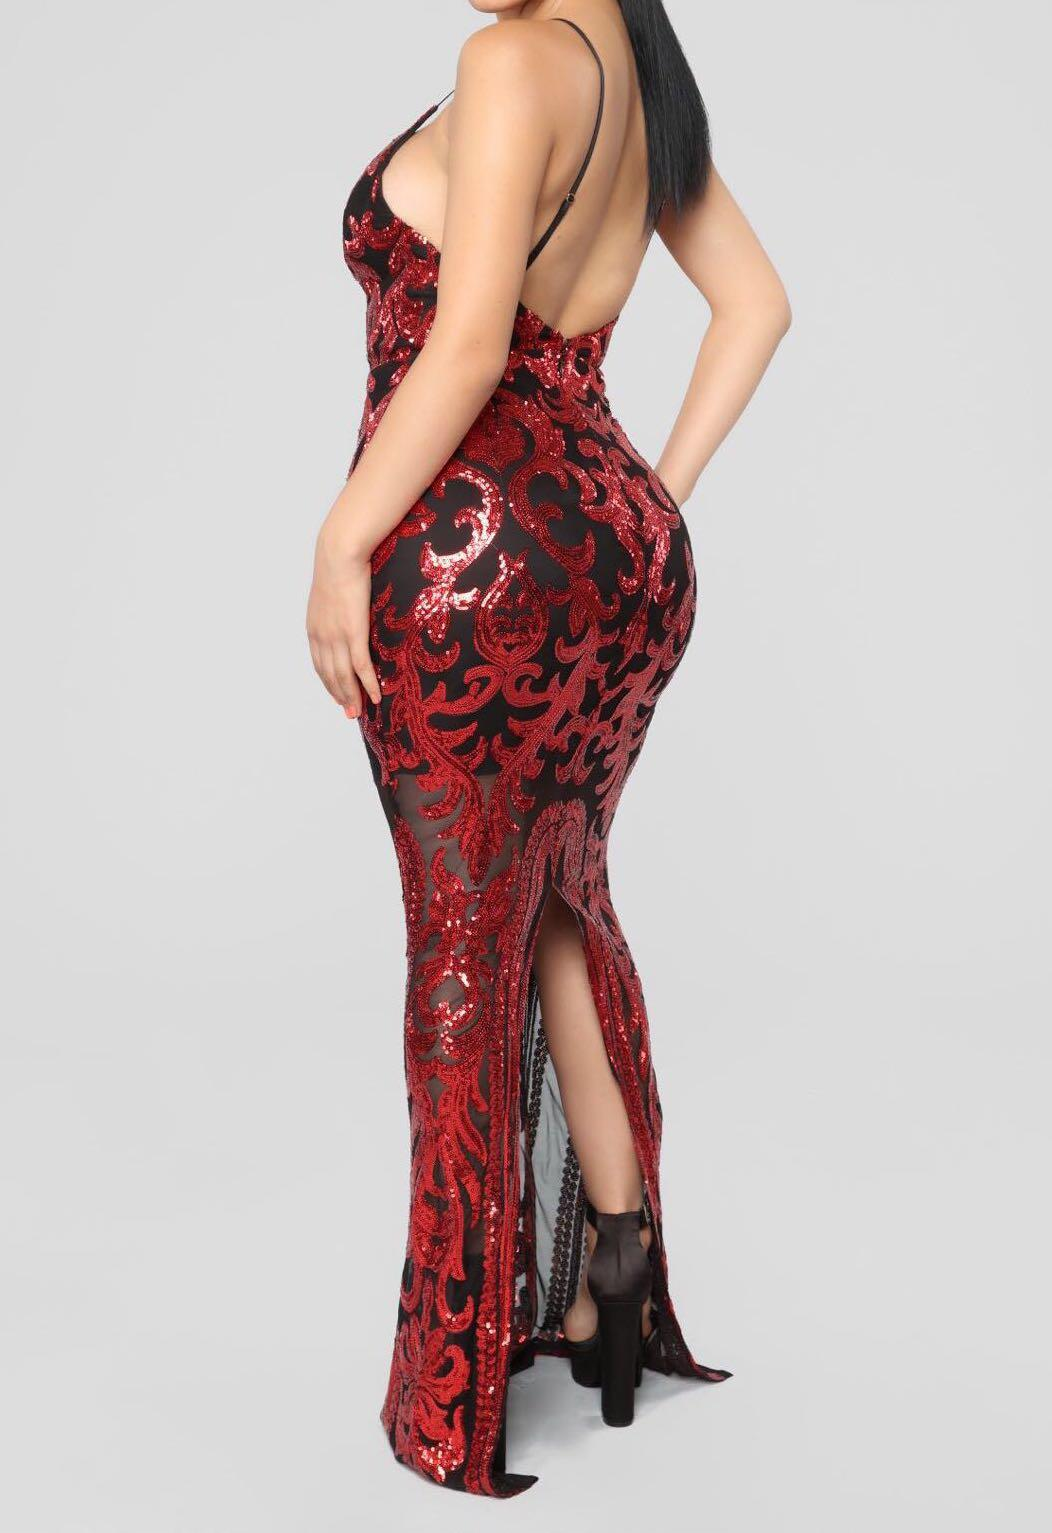 Fashion Nova Guest of Honor Sequin Formal Dress Red